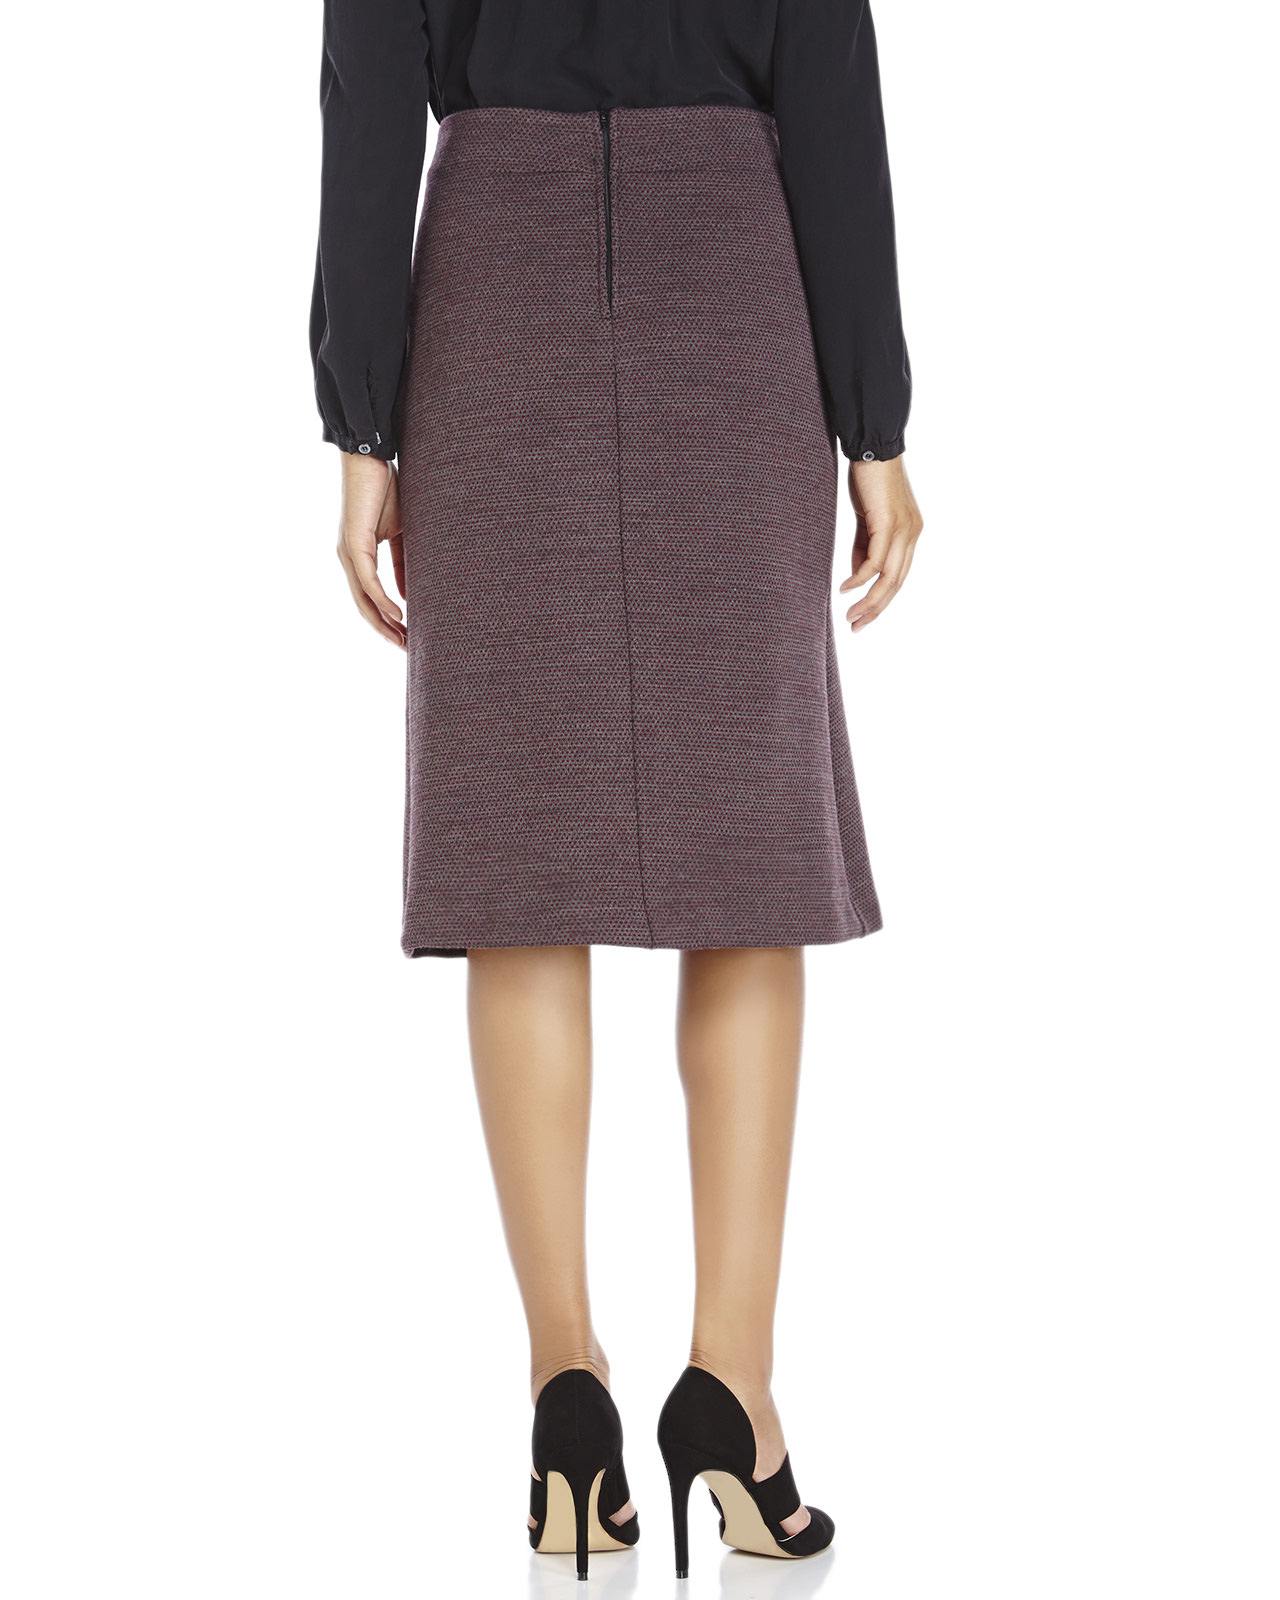 Century 21 ottod 39 ame woven a line skirt in purple lyst for Century 21 dress shirts